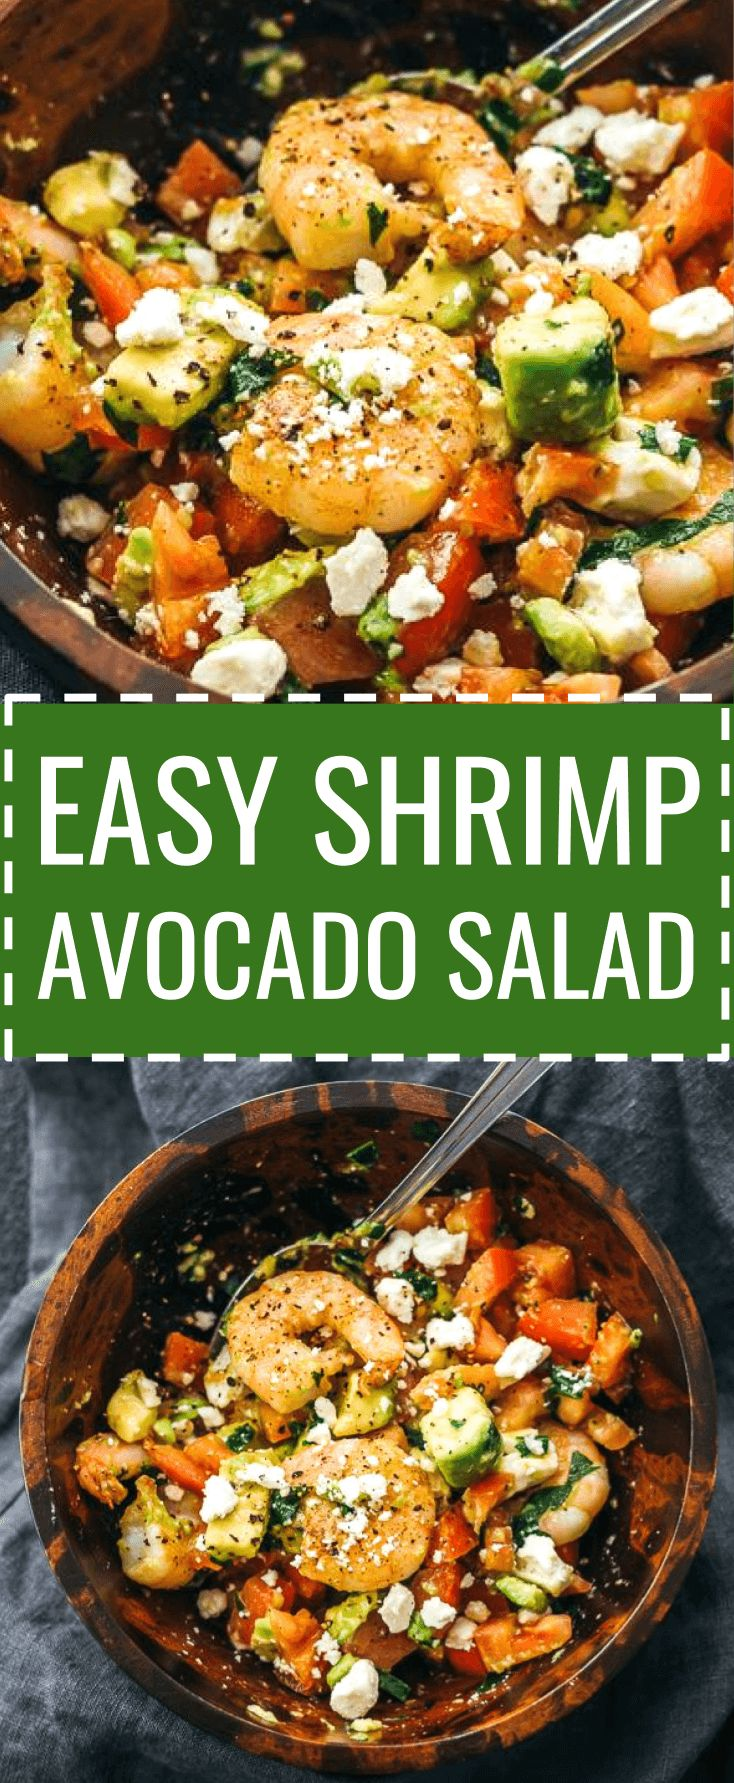 Here's a delicious and healthy cold shrimp salad with avocado, tomatoes, feta cheese, and lemon juice. dressing / summer / appetizer / fried / southwest / weight watchers / simple / whole 30 / cooked / citrus / fresh / meal prep / best / dip / ideas / skinny / chopped / keto / low carb / diet / atkins / induction / meals / recipes / easy / dinner / lunch / foods / healthy #shrimp #salad #healthy via @savory_tooth